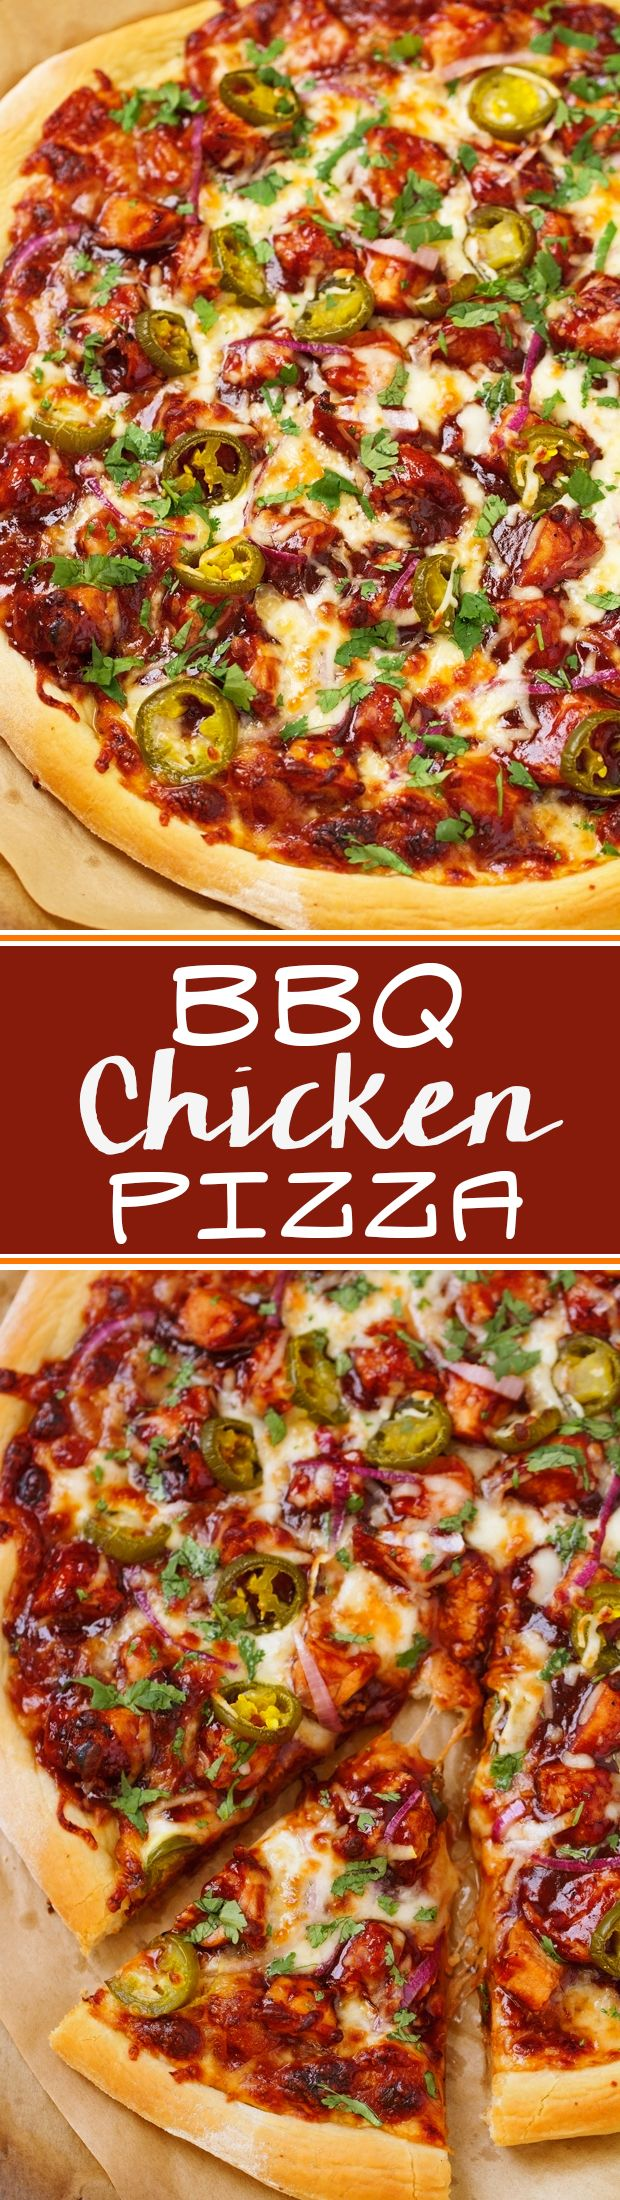 BBQ Chicken Pizza - made with grilled chicken, sliced jalapenos and red onions, and cilantro, So good you'll never go to CPK again!#bbqchickenpizza #chickenpizza #bbqpizza | Littlespicejar.com @littlespicejar